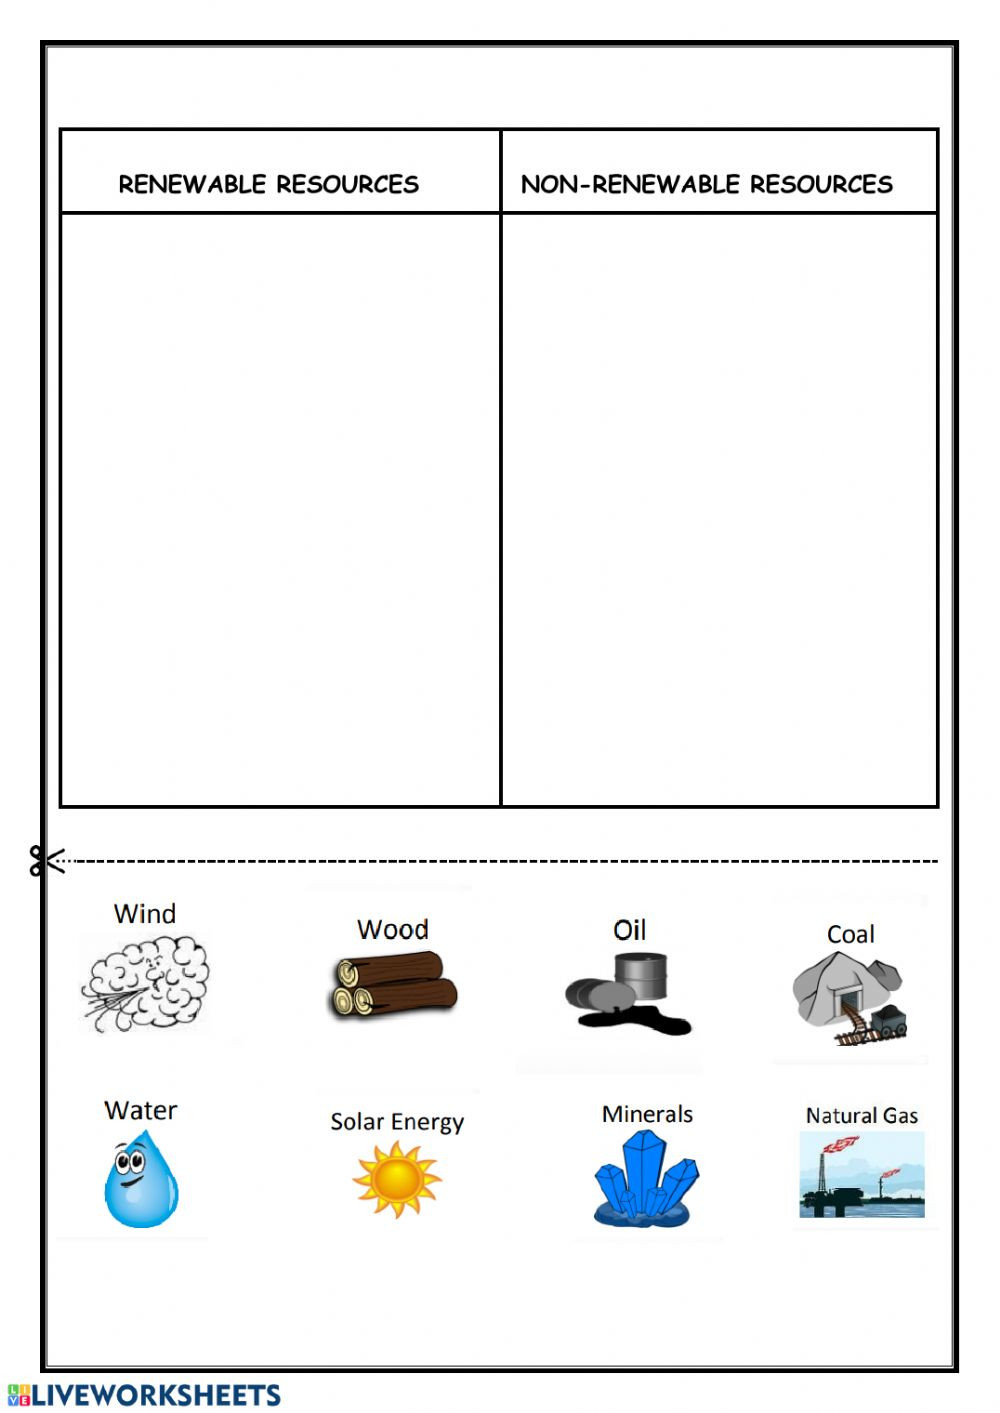 RENEWABLE RESOURCES and NON RENEWABLE RESOURCES worksheet